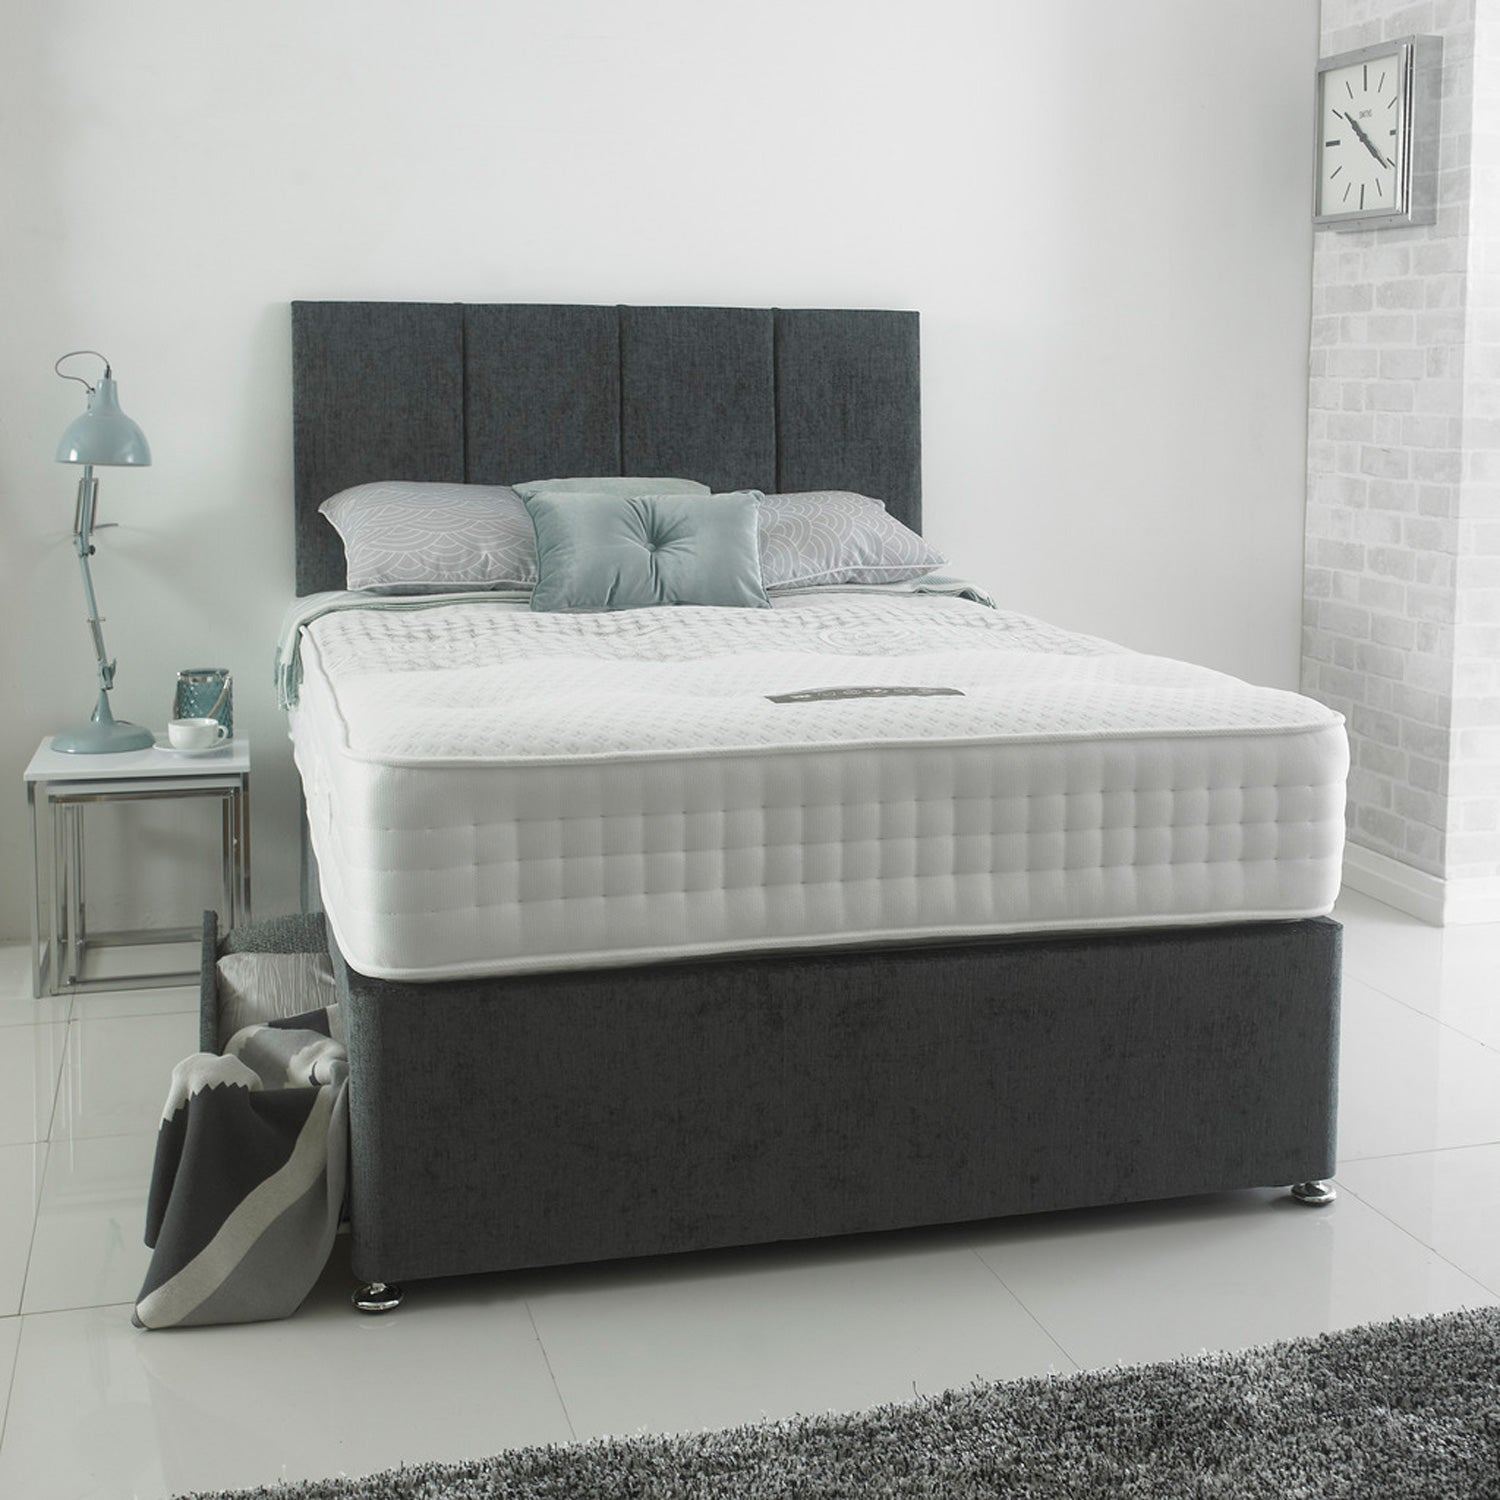 Stratus 1000 Luxury (Mattress = Medium)